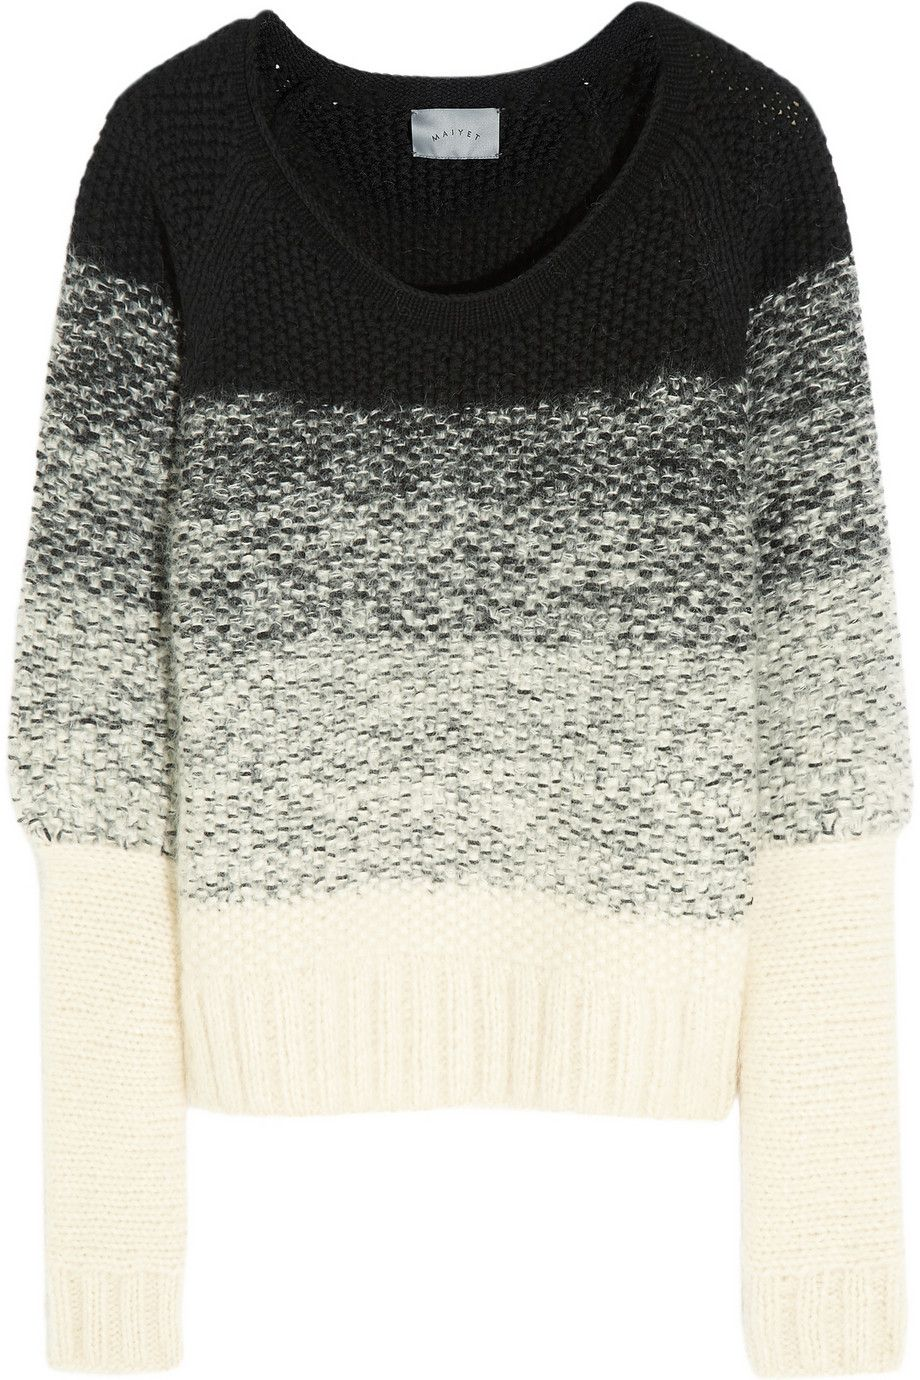 Top Colours Light Sweater Bottom Mohair I On Porter A Knit The Would Maiyet Degradé Switch Chunky but Net com Blend Dark qUwpZ